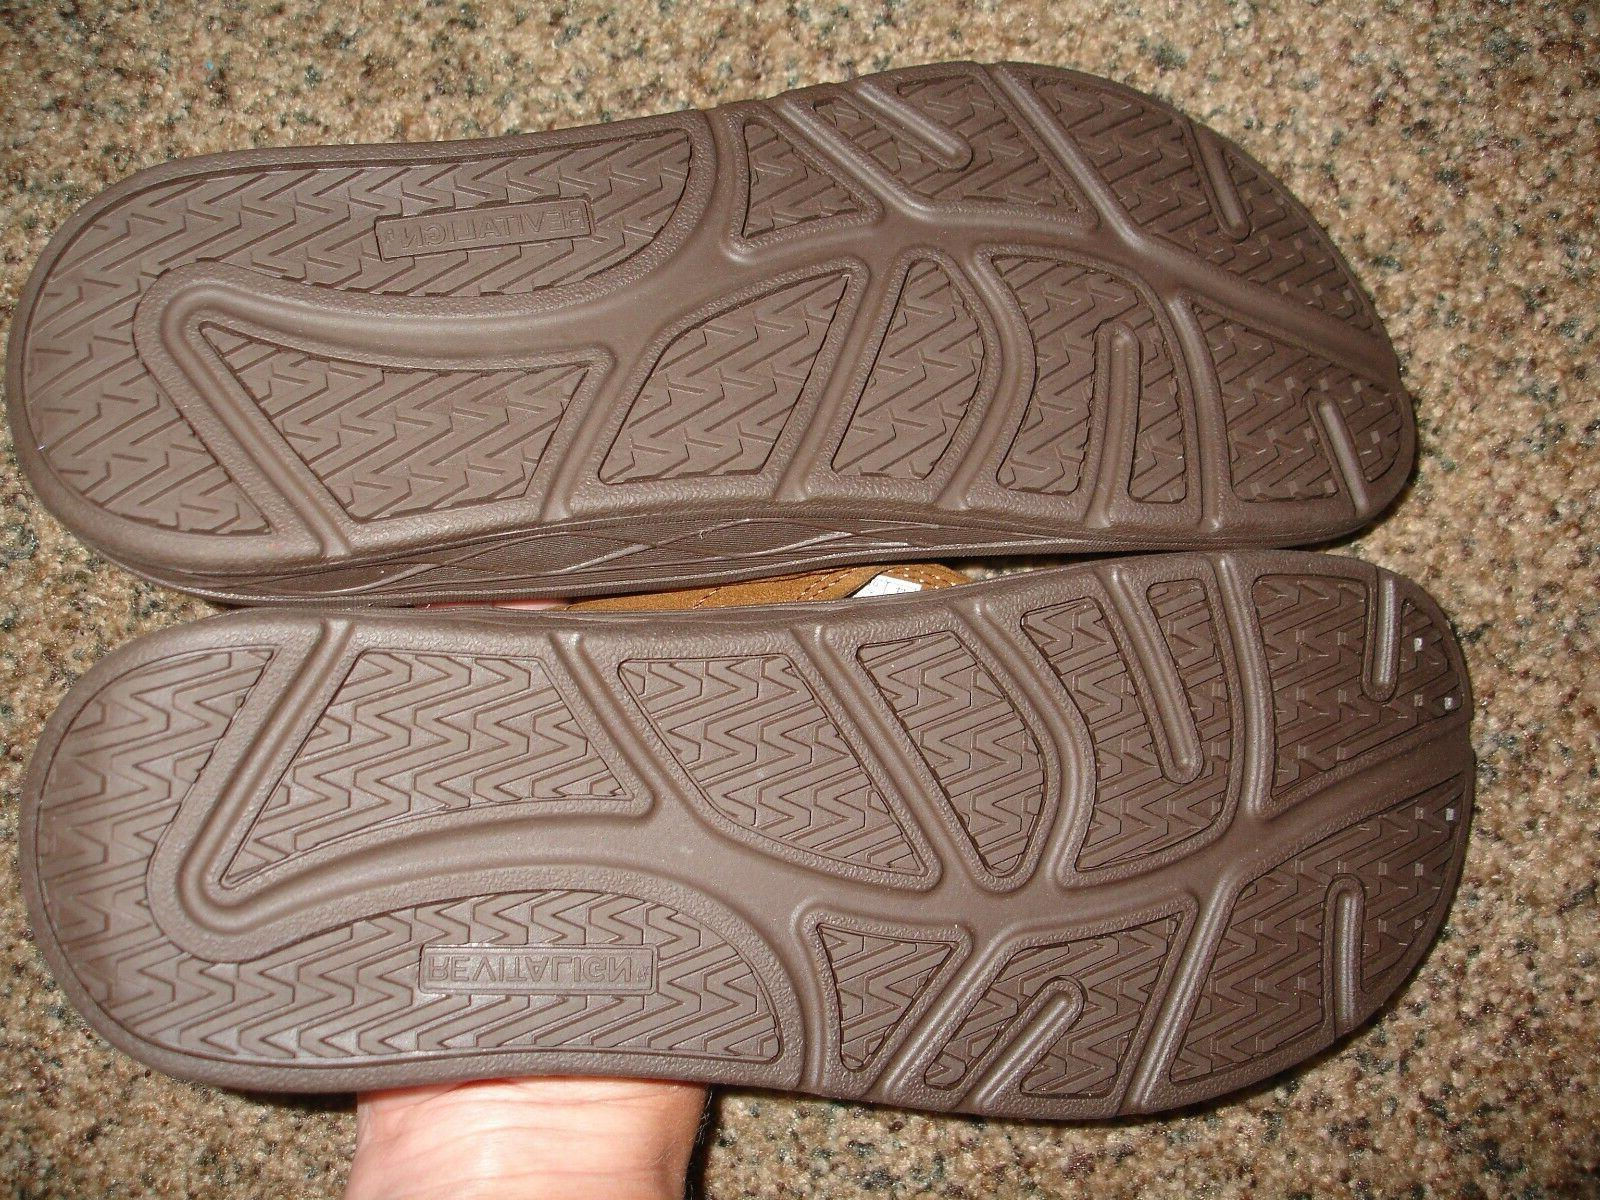 New 9 Flop Sandal New Brown Sandals